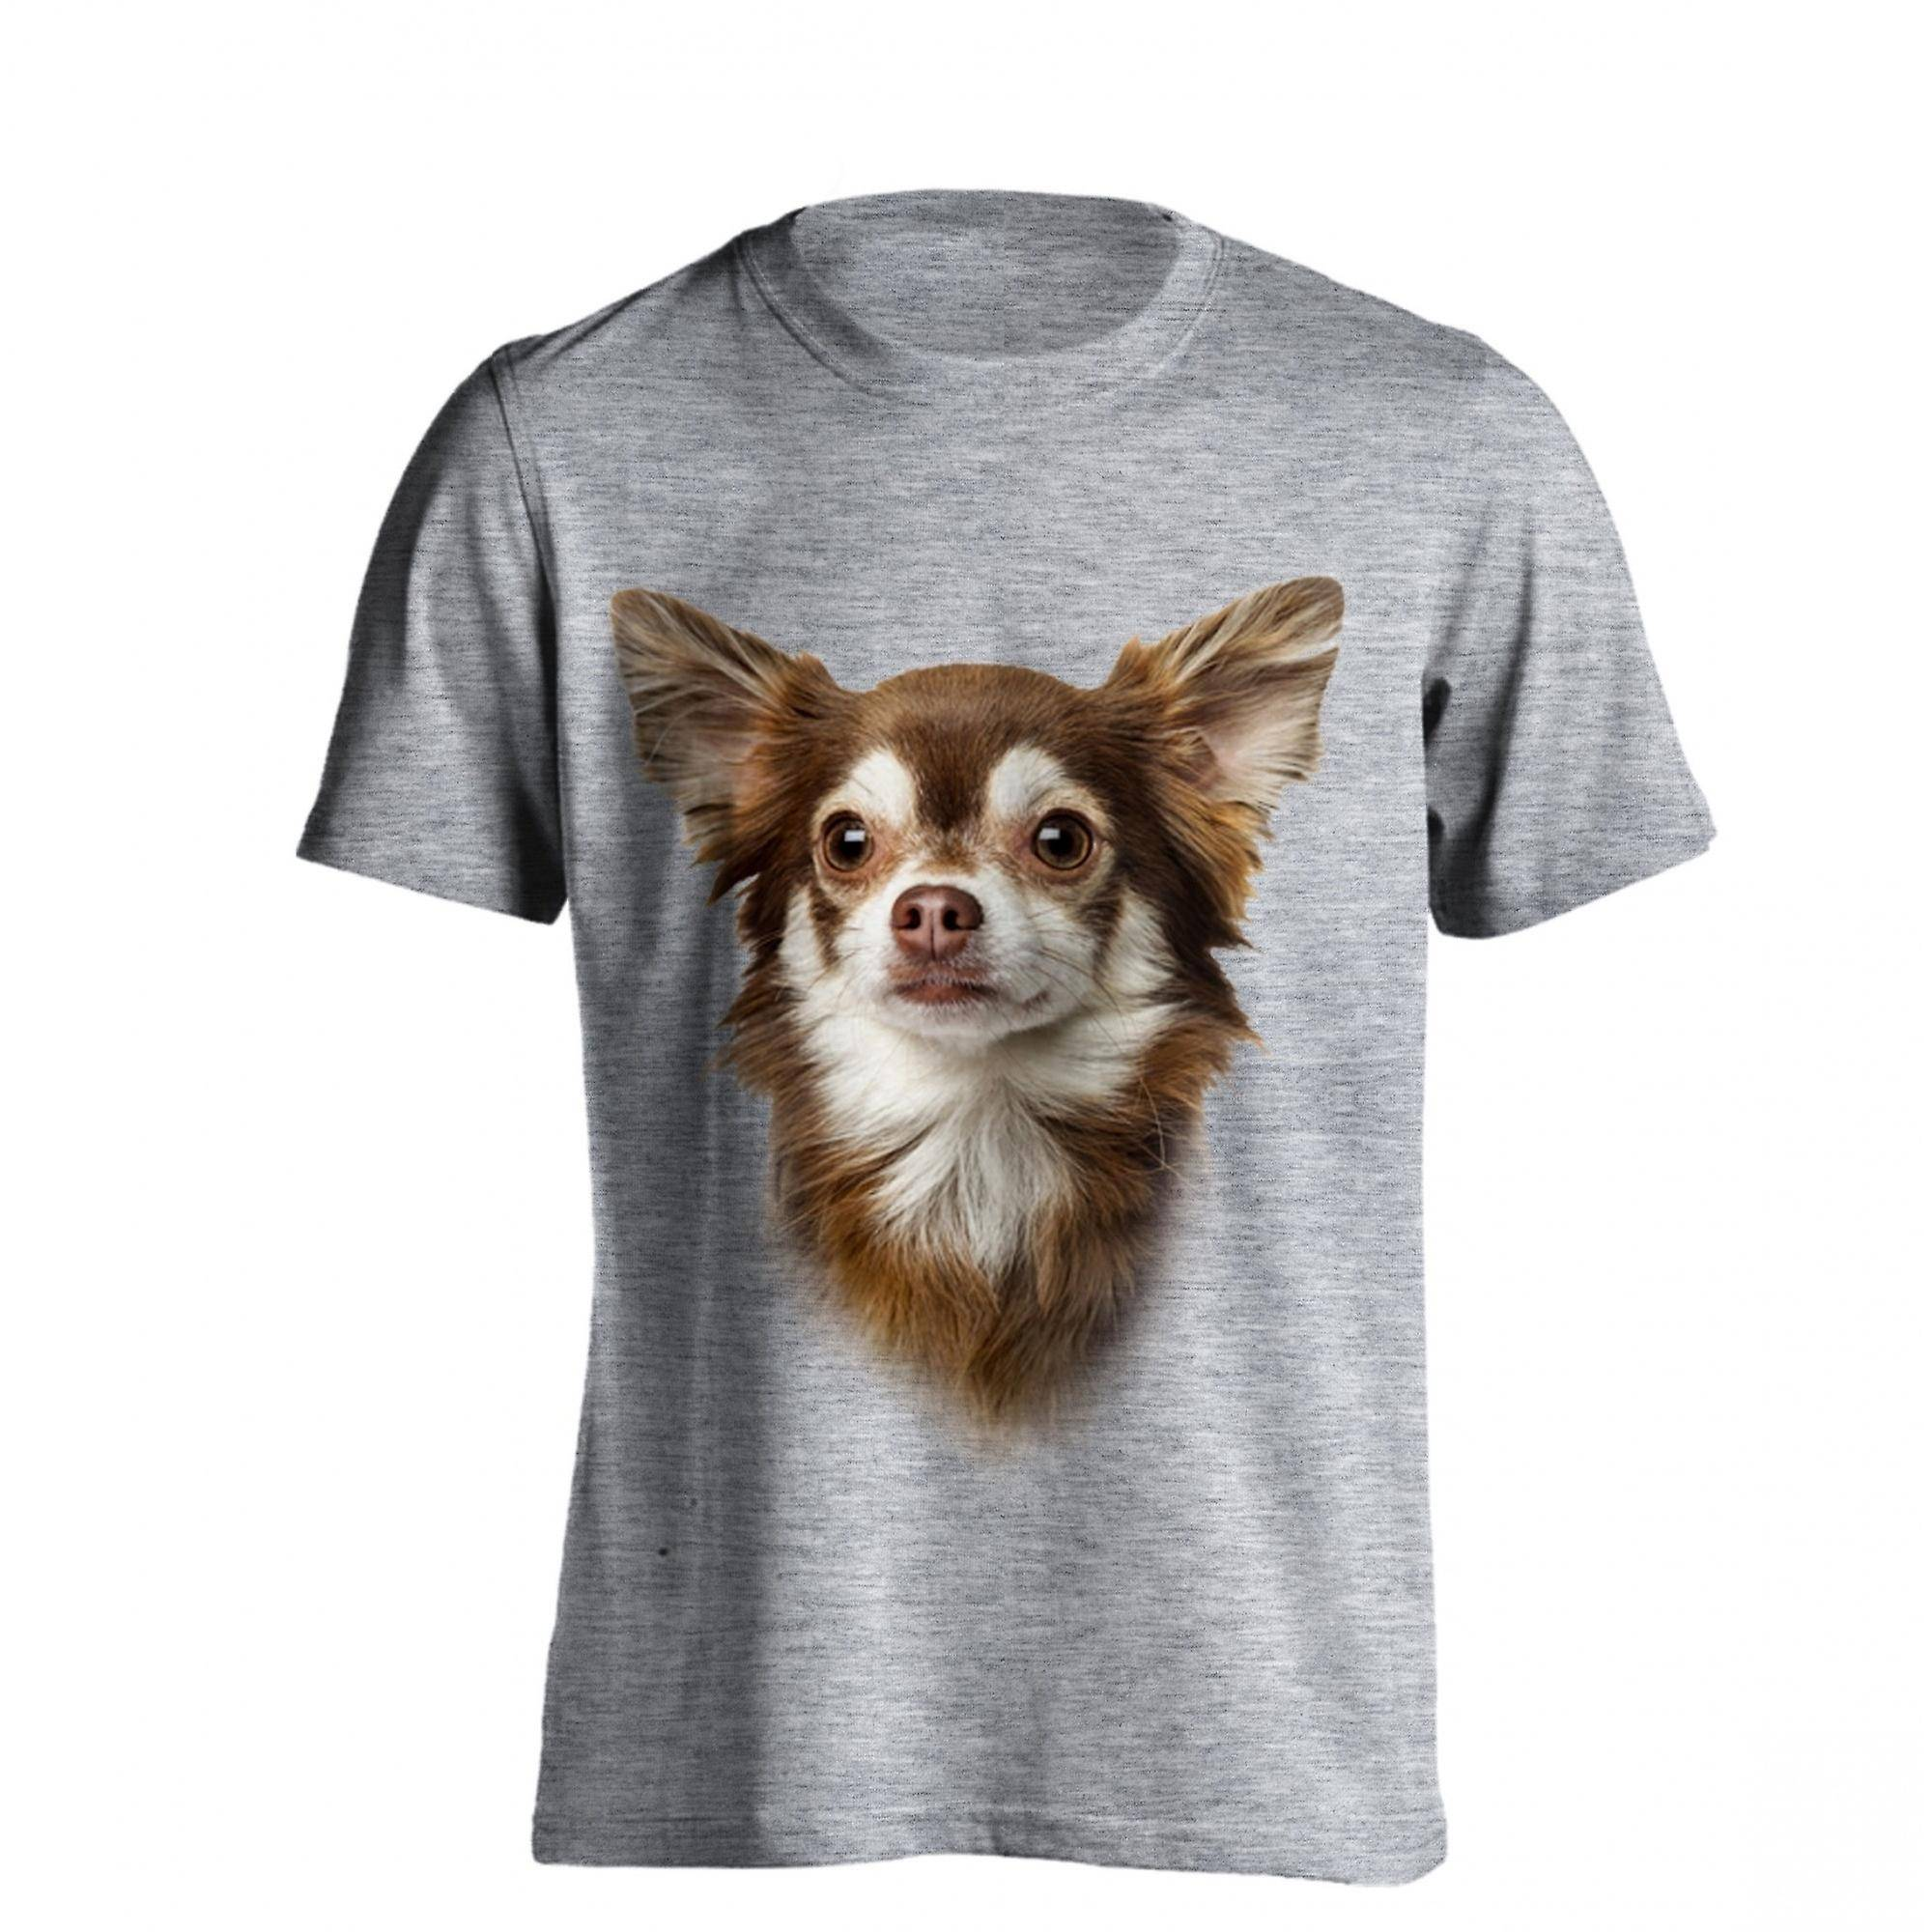 The T-Shirt Factory T-Shirt fabriken Mens Chihuahua hund T-Shirt